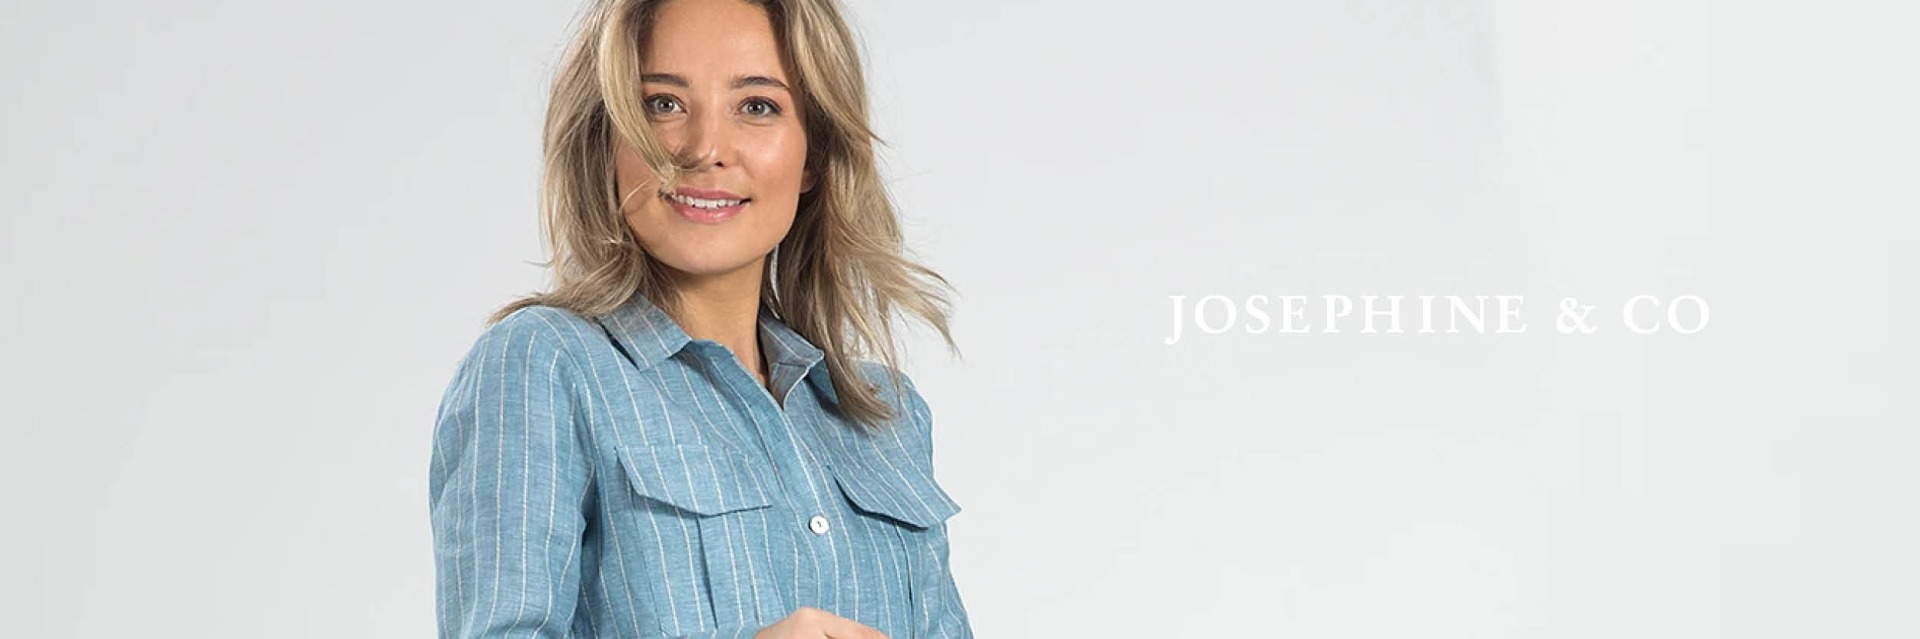 Josephine en Co by Steppin' Out